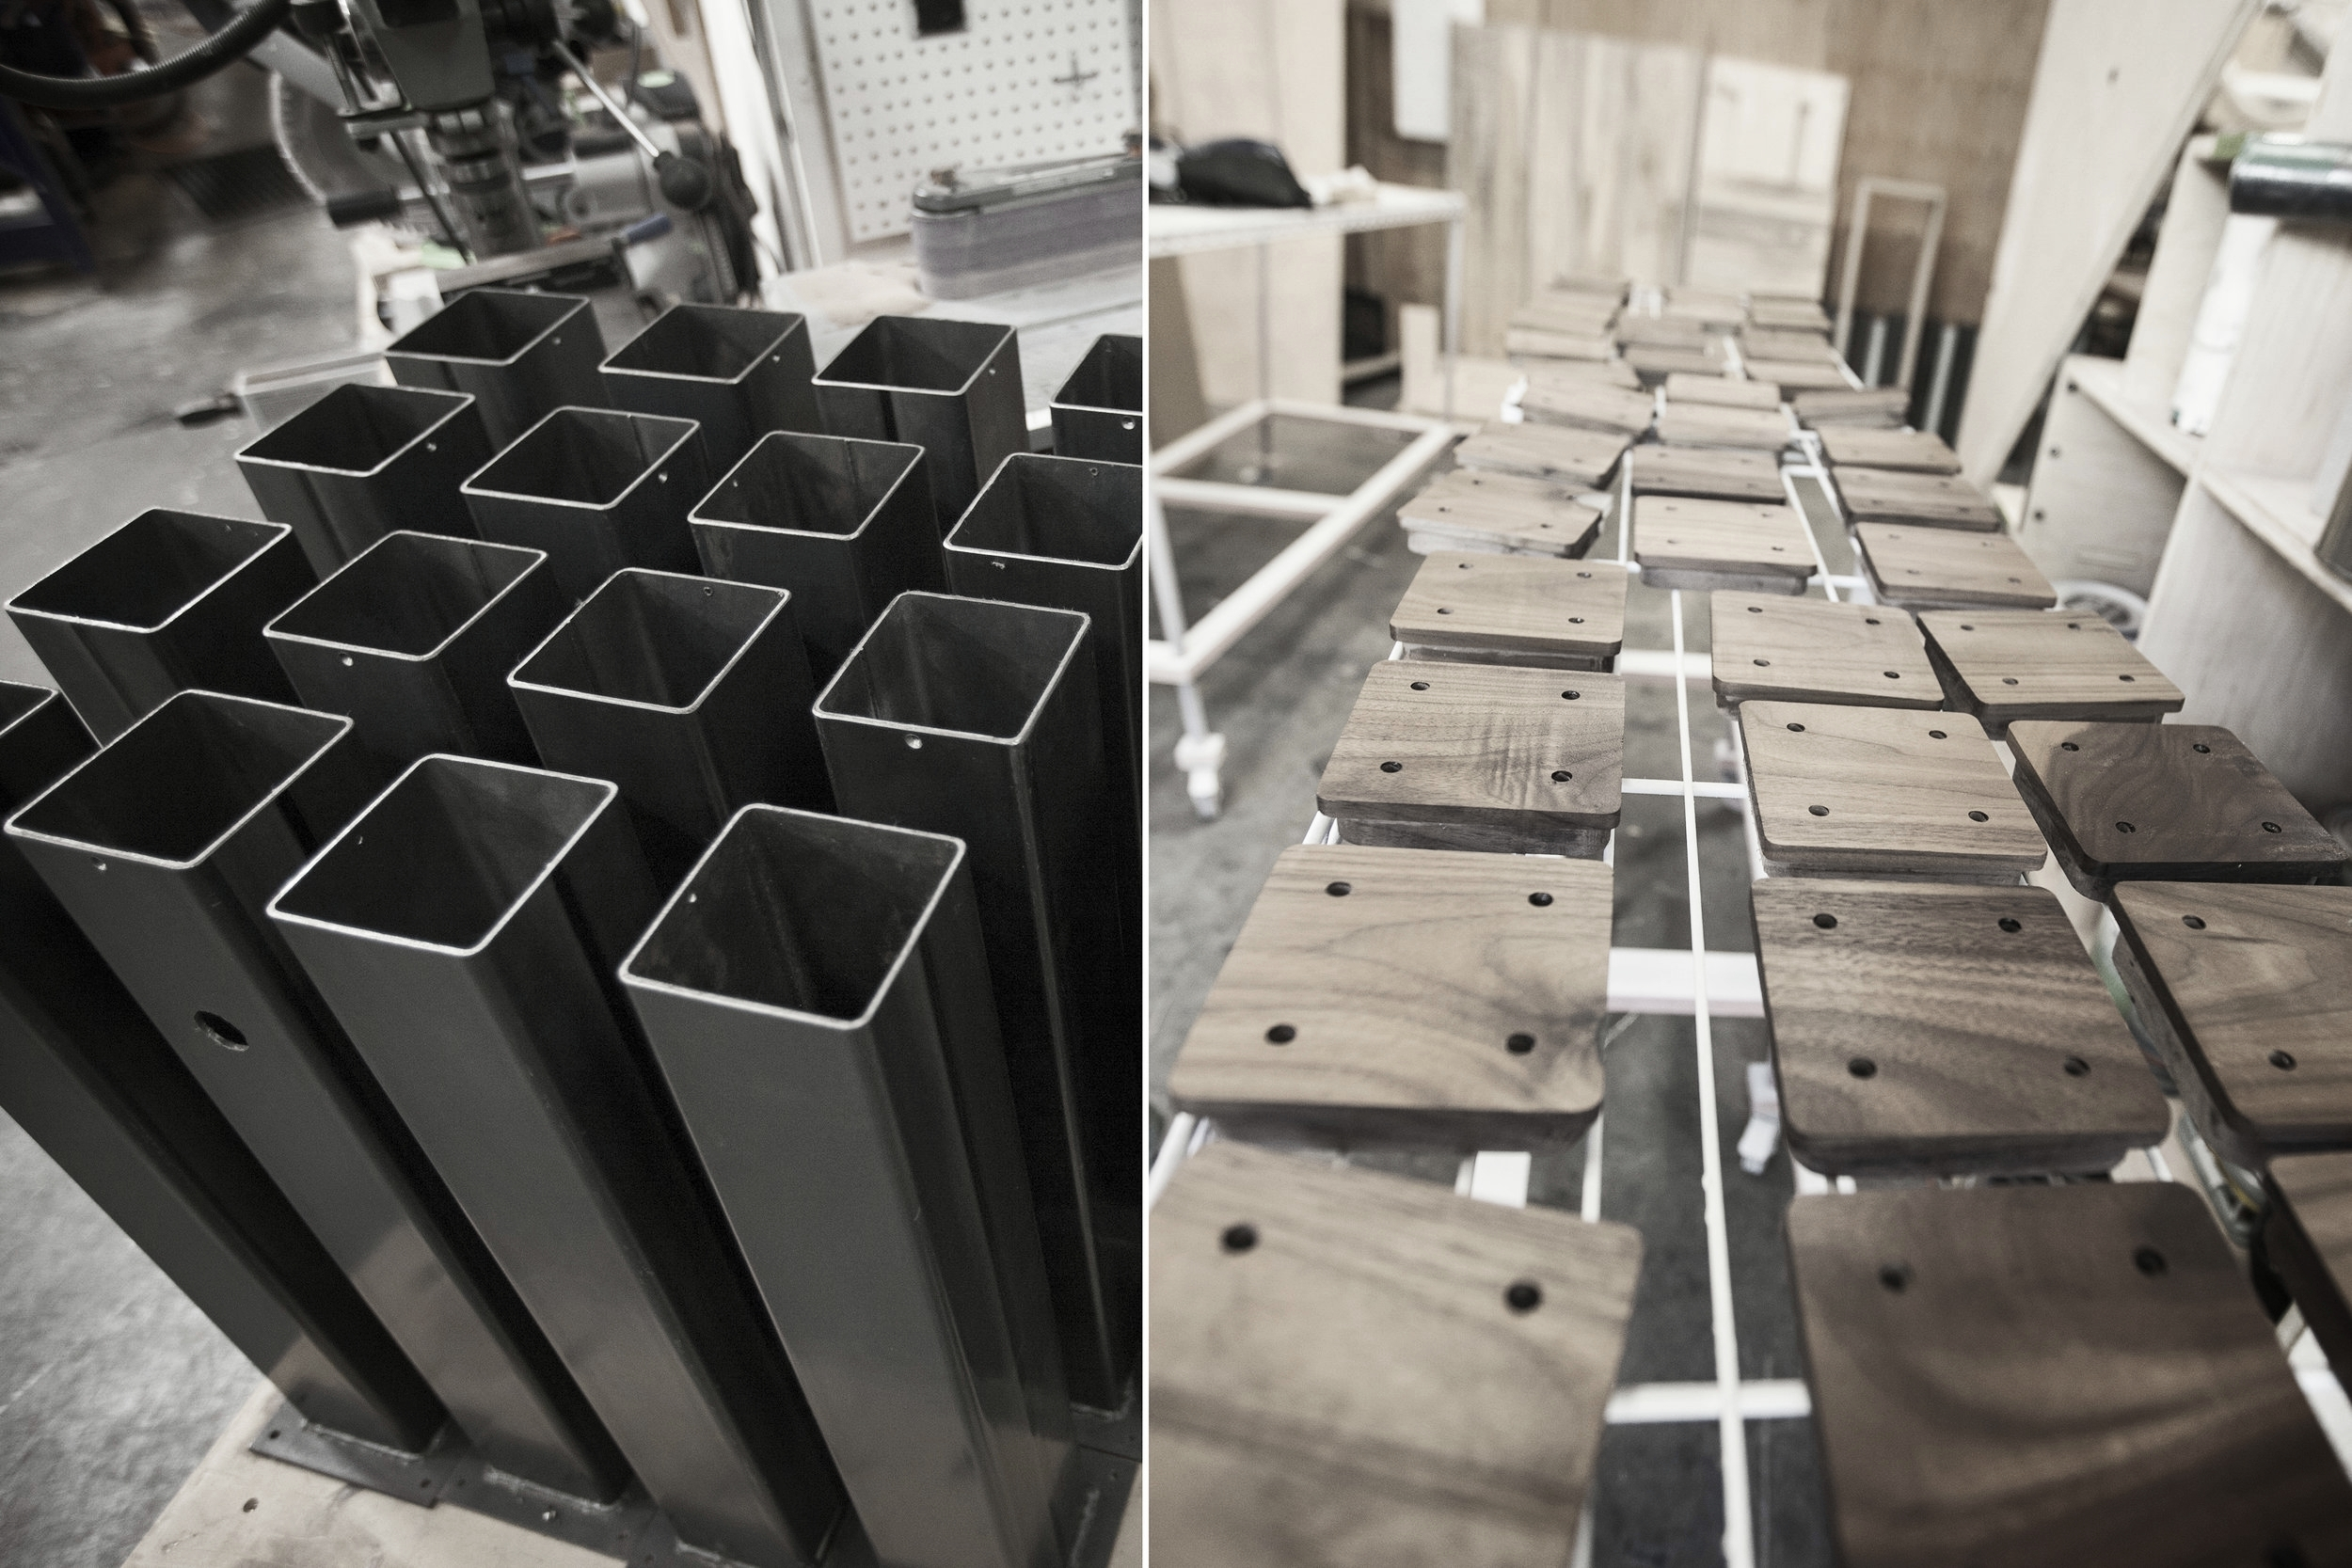 Table legs parts ready for assembly at our in-house shop.